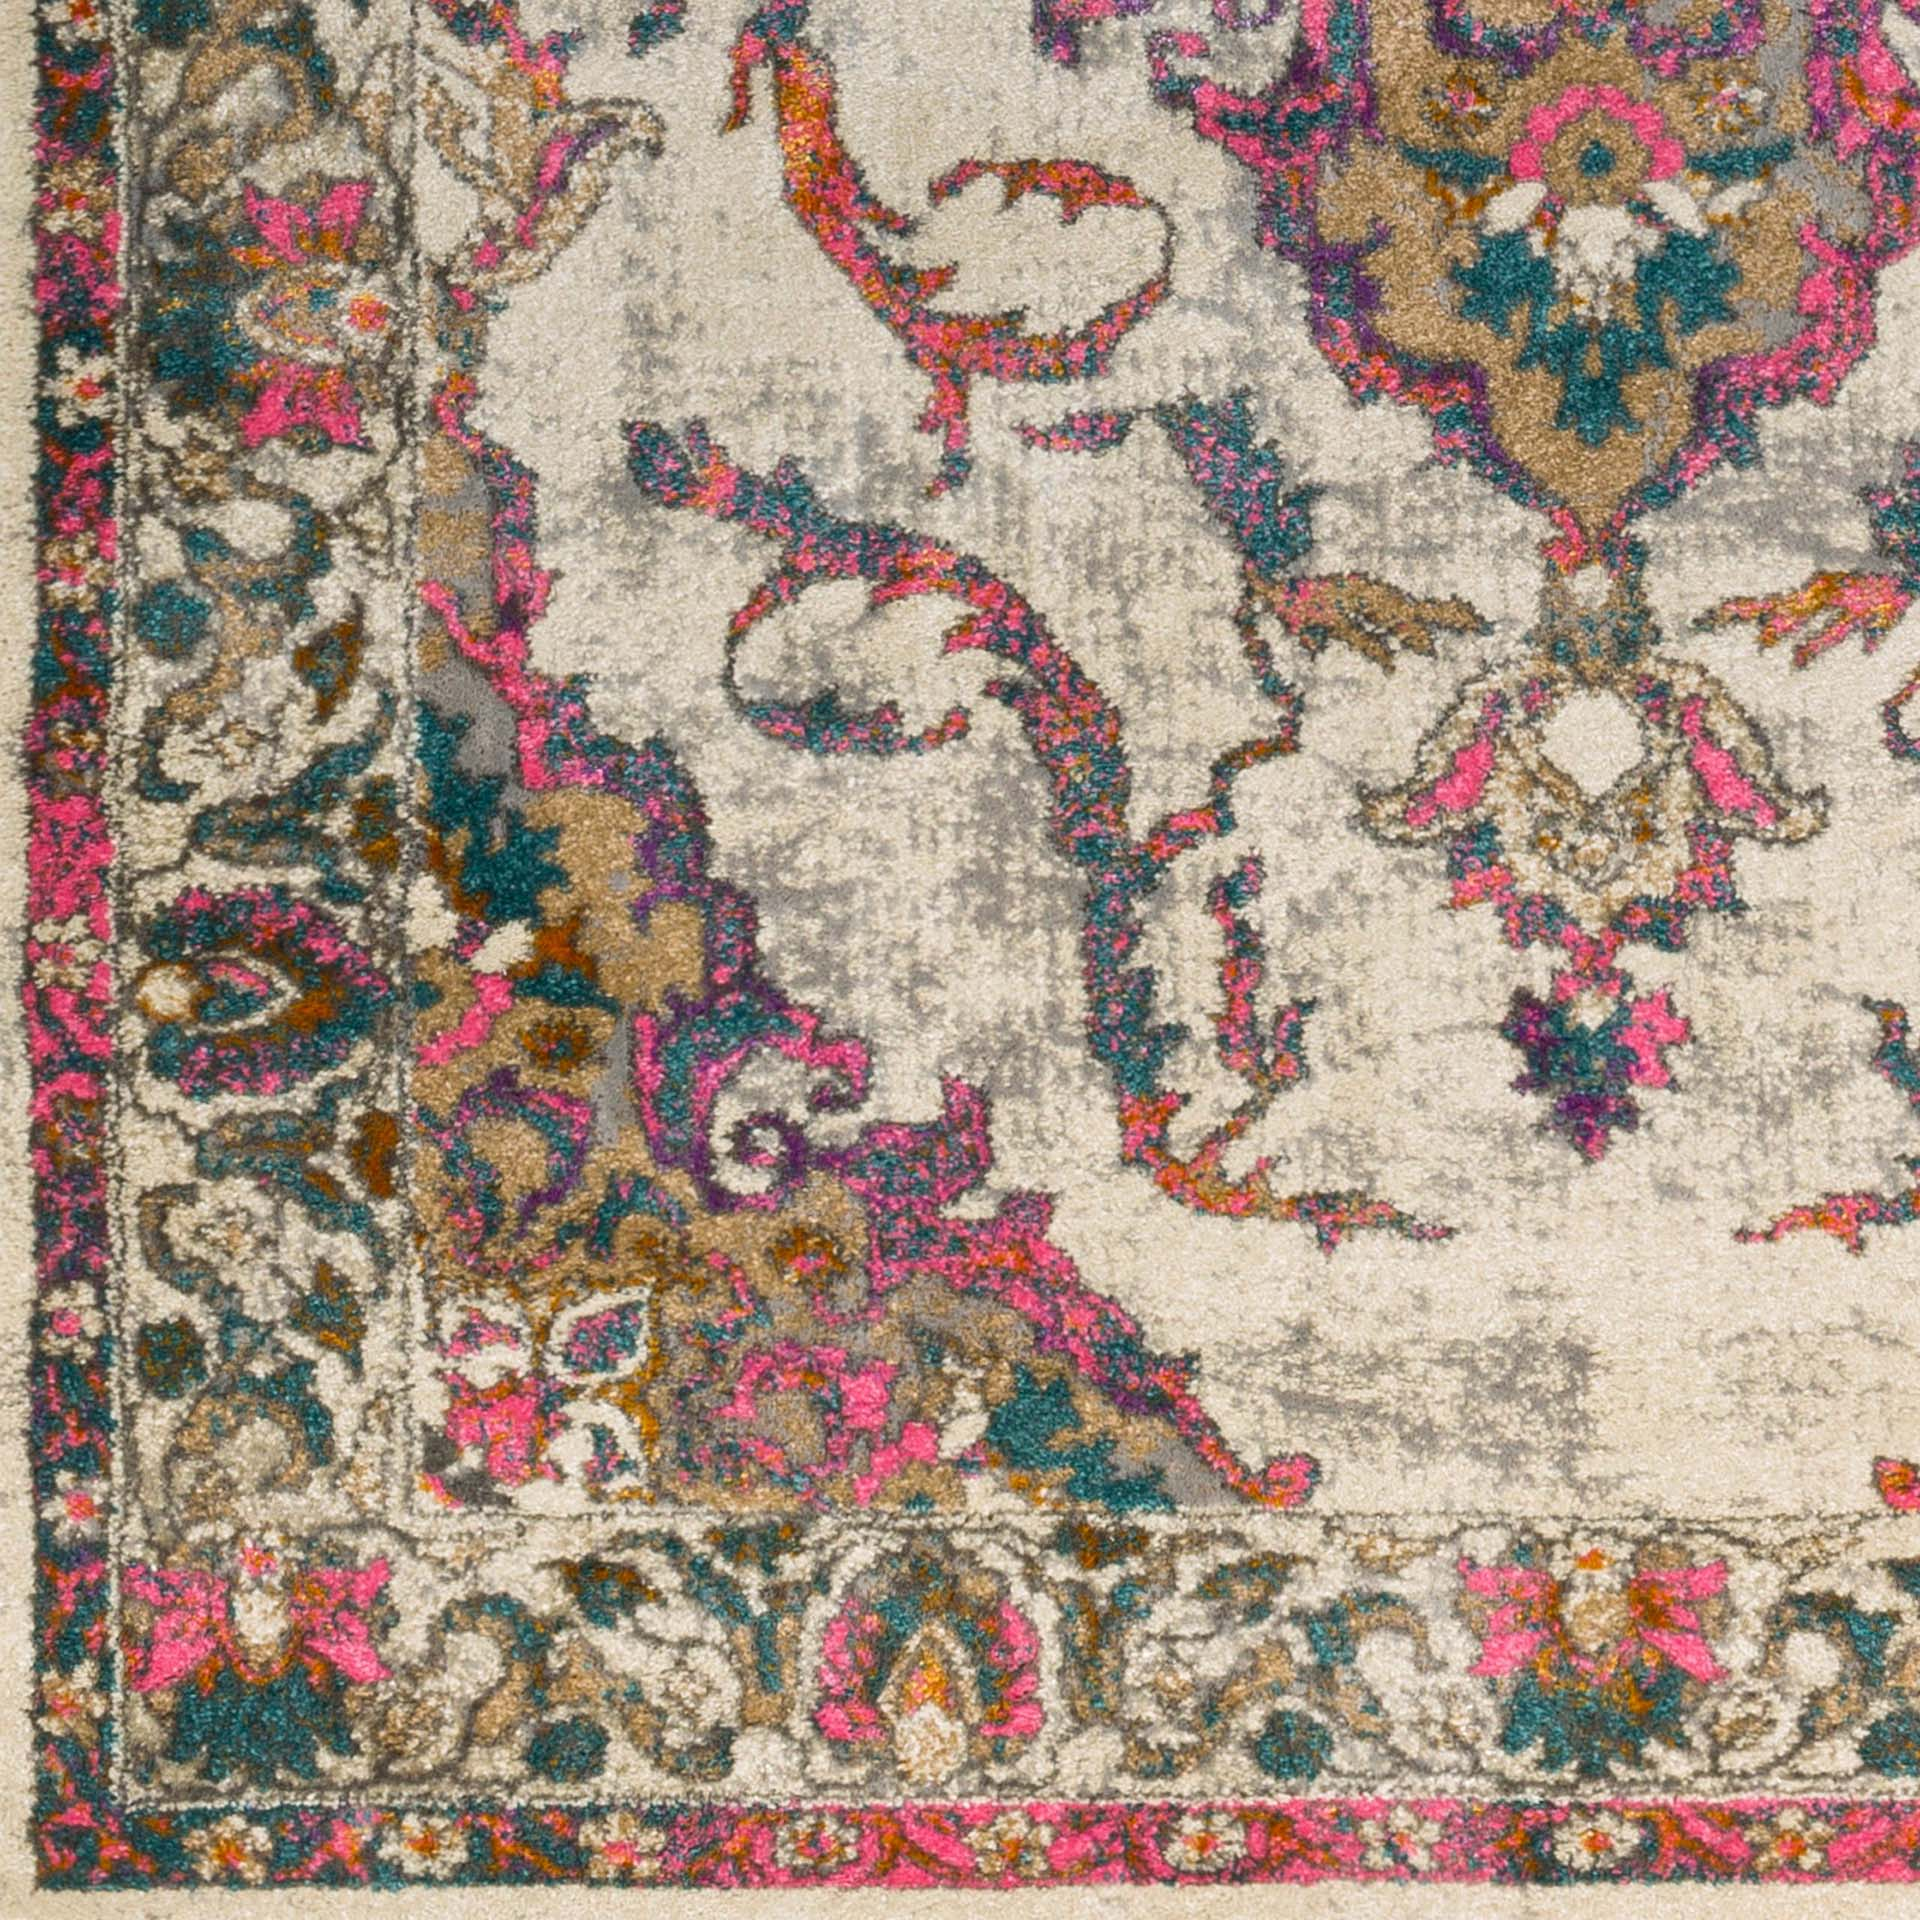 Classic Turkish area rug in ivory with pink, teal, gray and orange floral and ribbon pattern - Detailed Shot